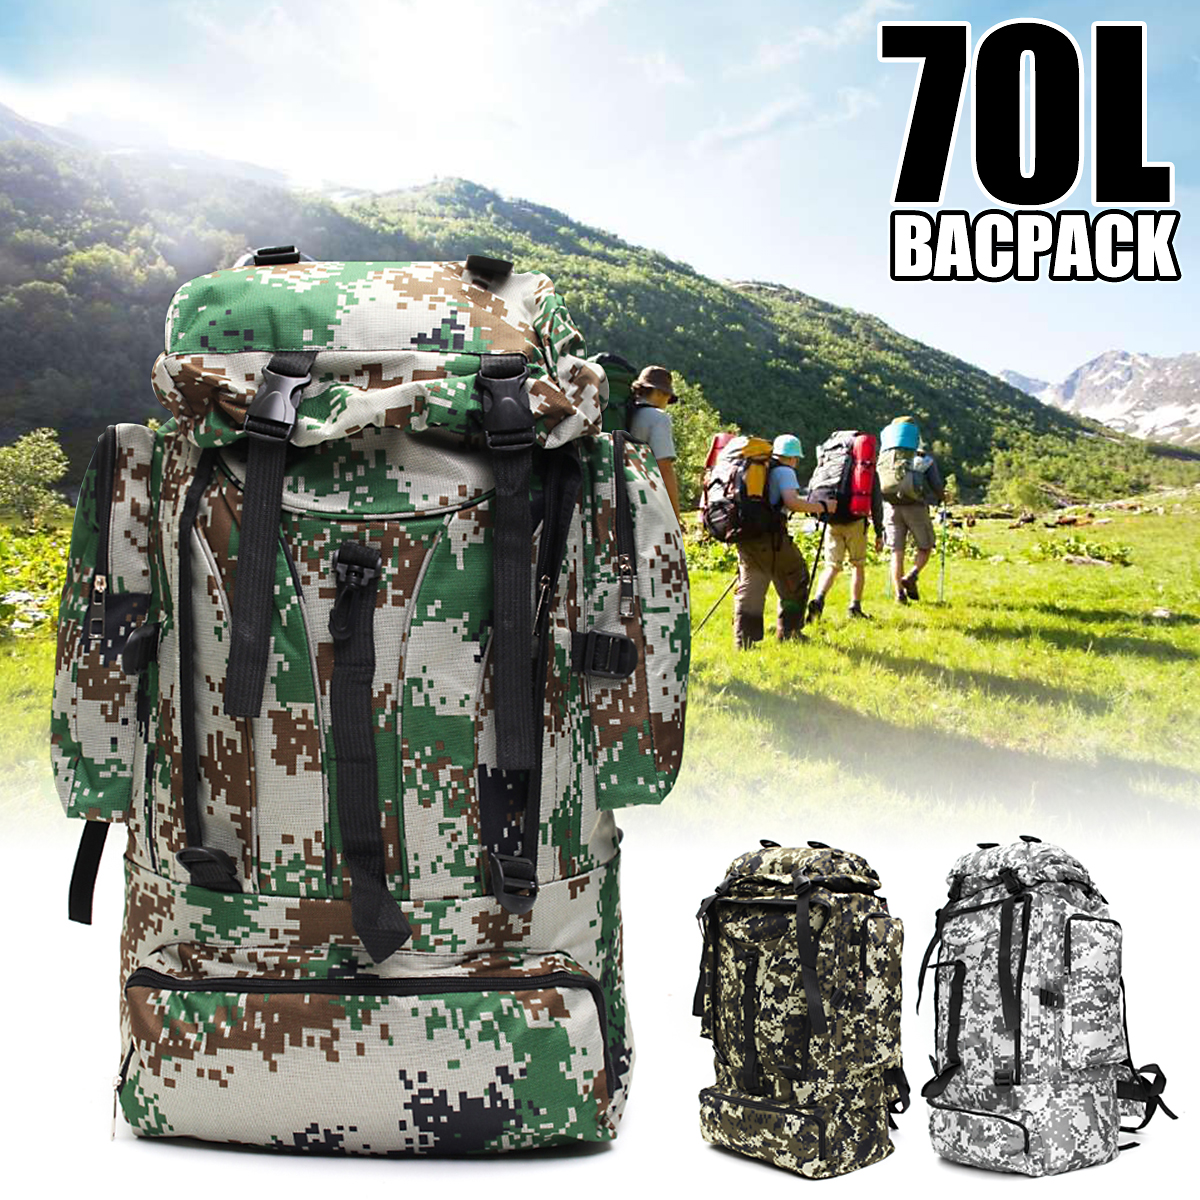 70L Large Capacity Outdoor Sport Military Tactical Climbing Mountaineering Backpack Camping Hiking Trekking Rucksack Travel Bag sinairsoft outdoor military tactical backpack trekking sport travel 25l nylon camping hiking trekking camouflage bag ly0062